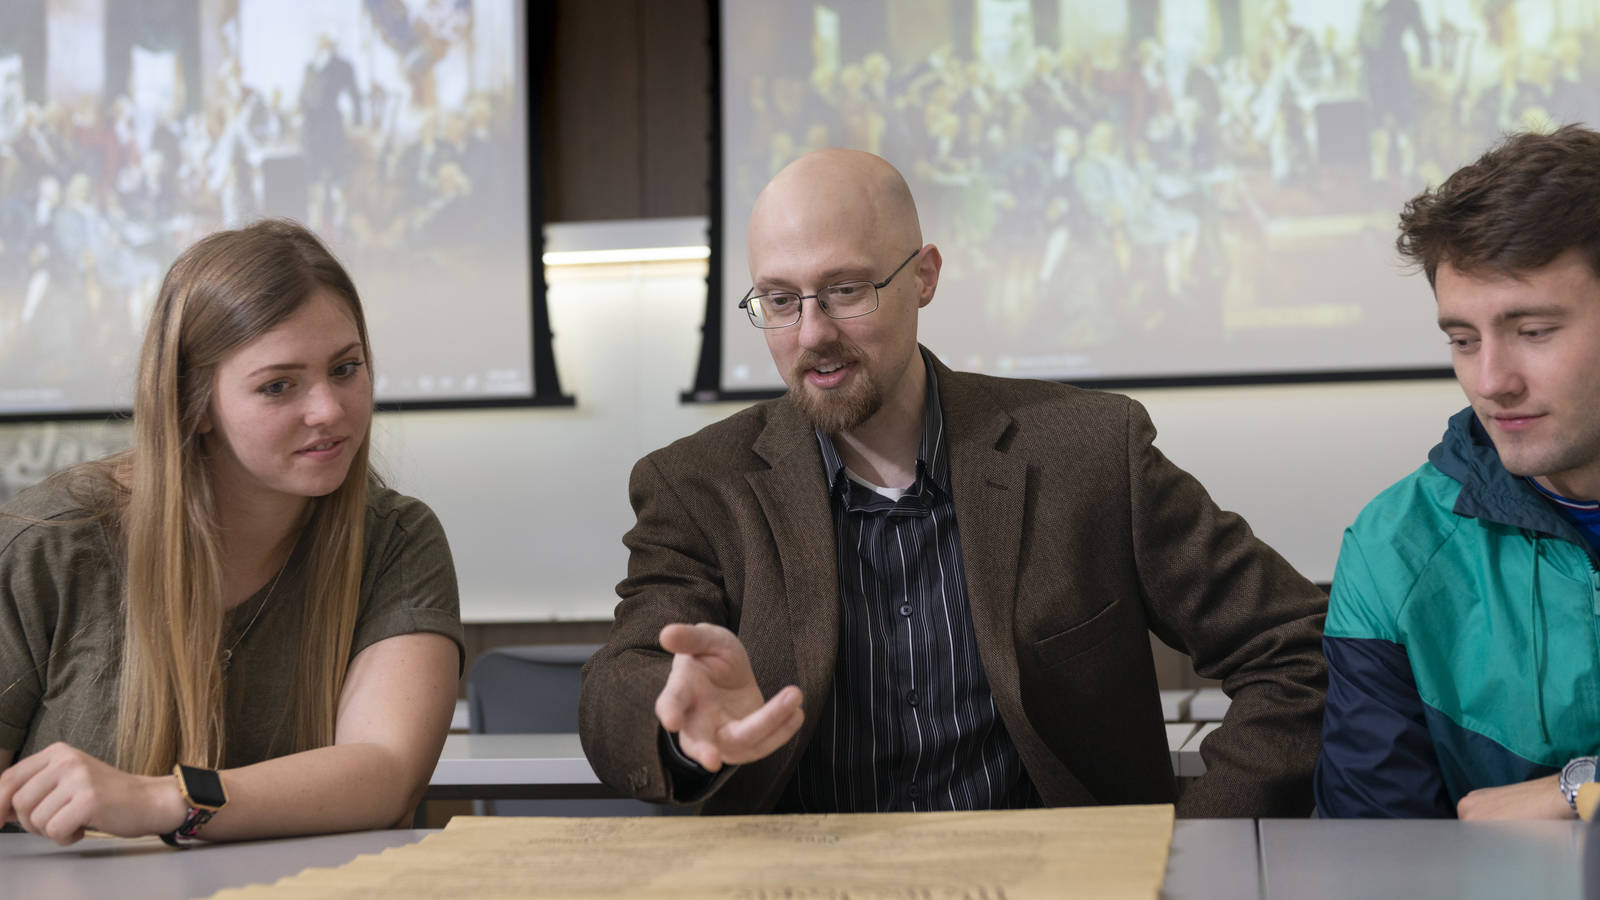 Blugolds Makenna Goretski (left) and Zach Janssen (right) are studying current political events in classes that focus on the U.S. Constitution, which are taught by Dr. Eric Kasper (center).